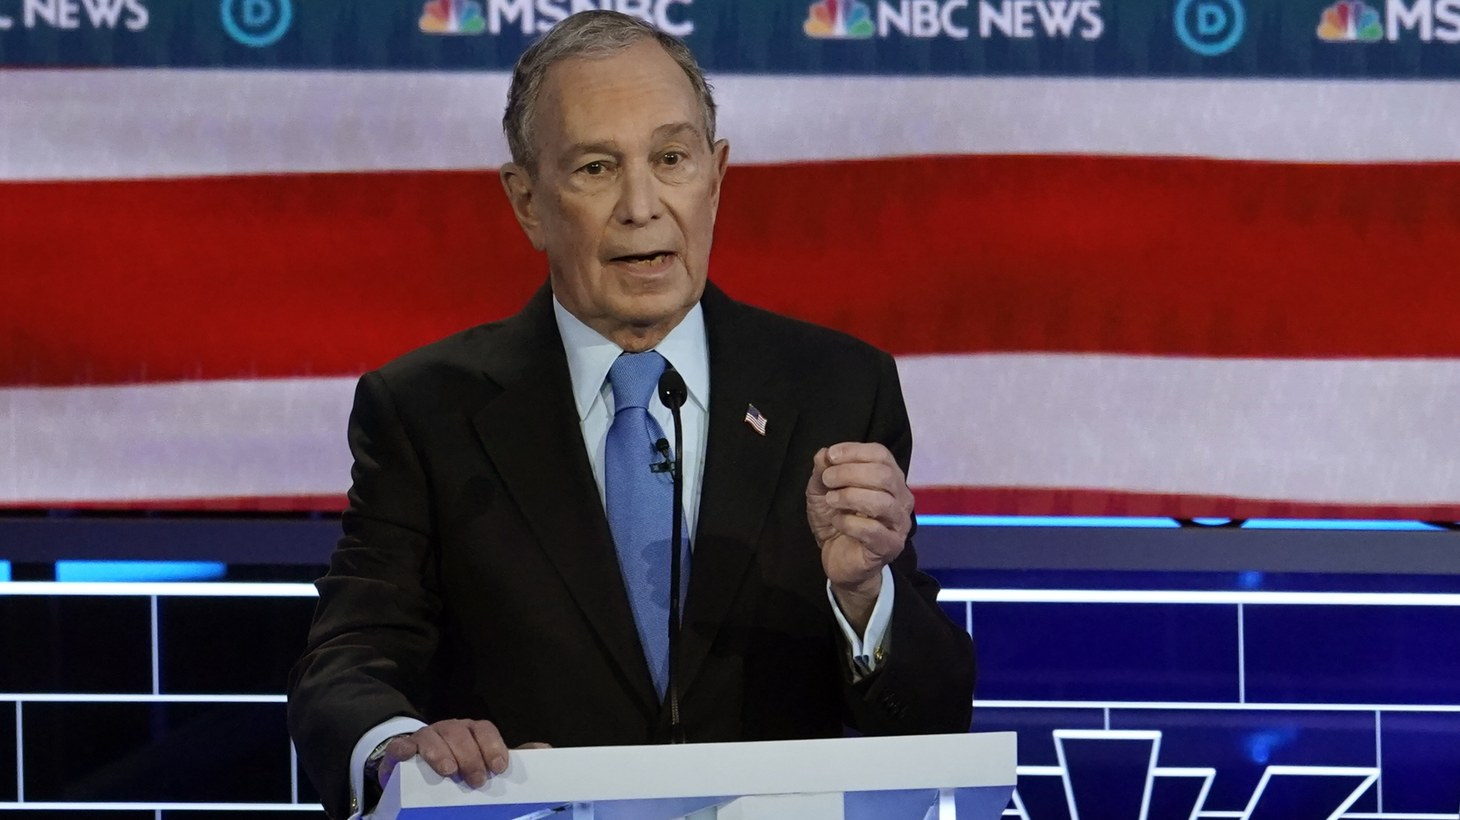 Former New York City Mayor Mike Bloomberg speaks at the ninth Democratic 2020 U.S. presidential candidates debate at the Paris Theater in Las Vegas, Nevada, U.S., February 19, 2020.